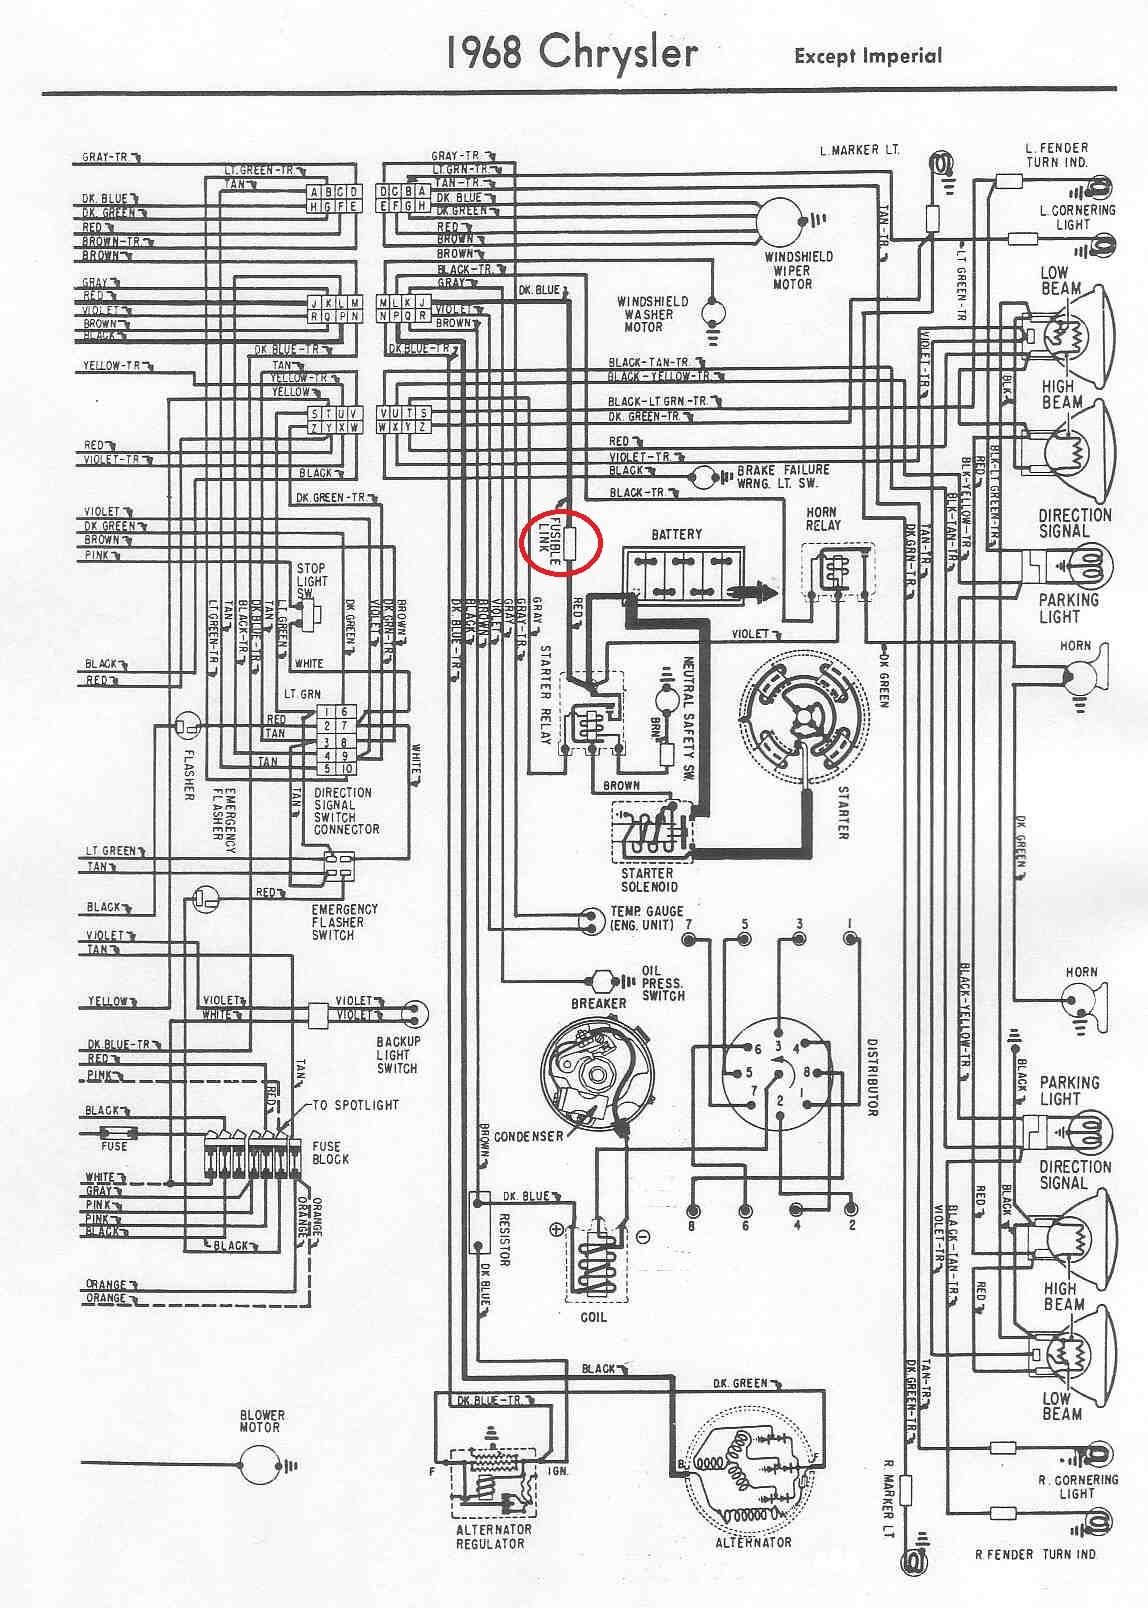 1961 Chrysler Wiring Diagram | Wiring Diagram on 1961 chevrolet truck, 1961 ford apache, 1958 gmc apache, chippewa apache, 1961 chevrolet deluxe, chevy apache, jeep apache, 1961 chevrolet stepside,